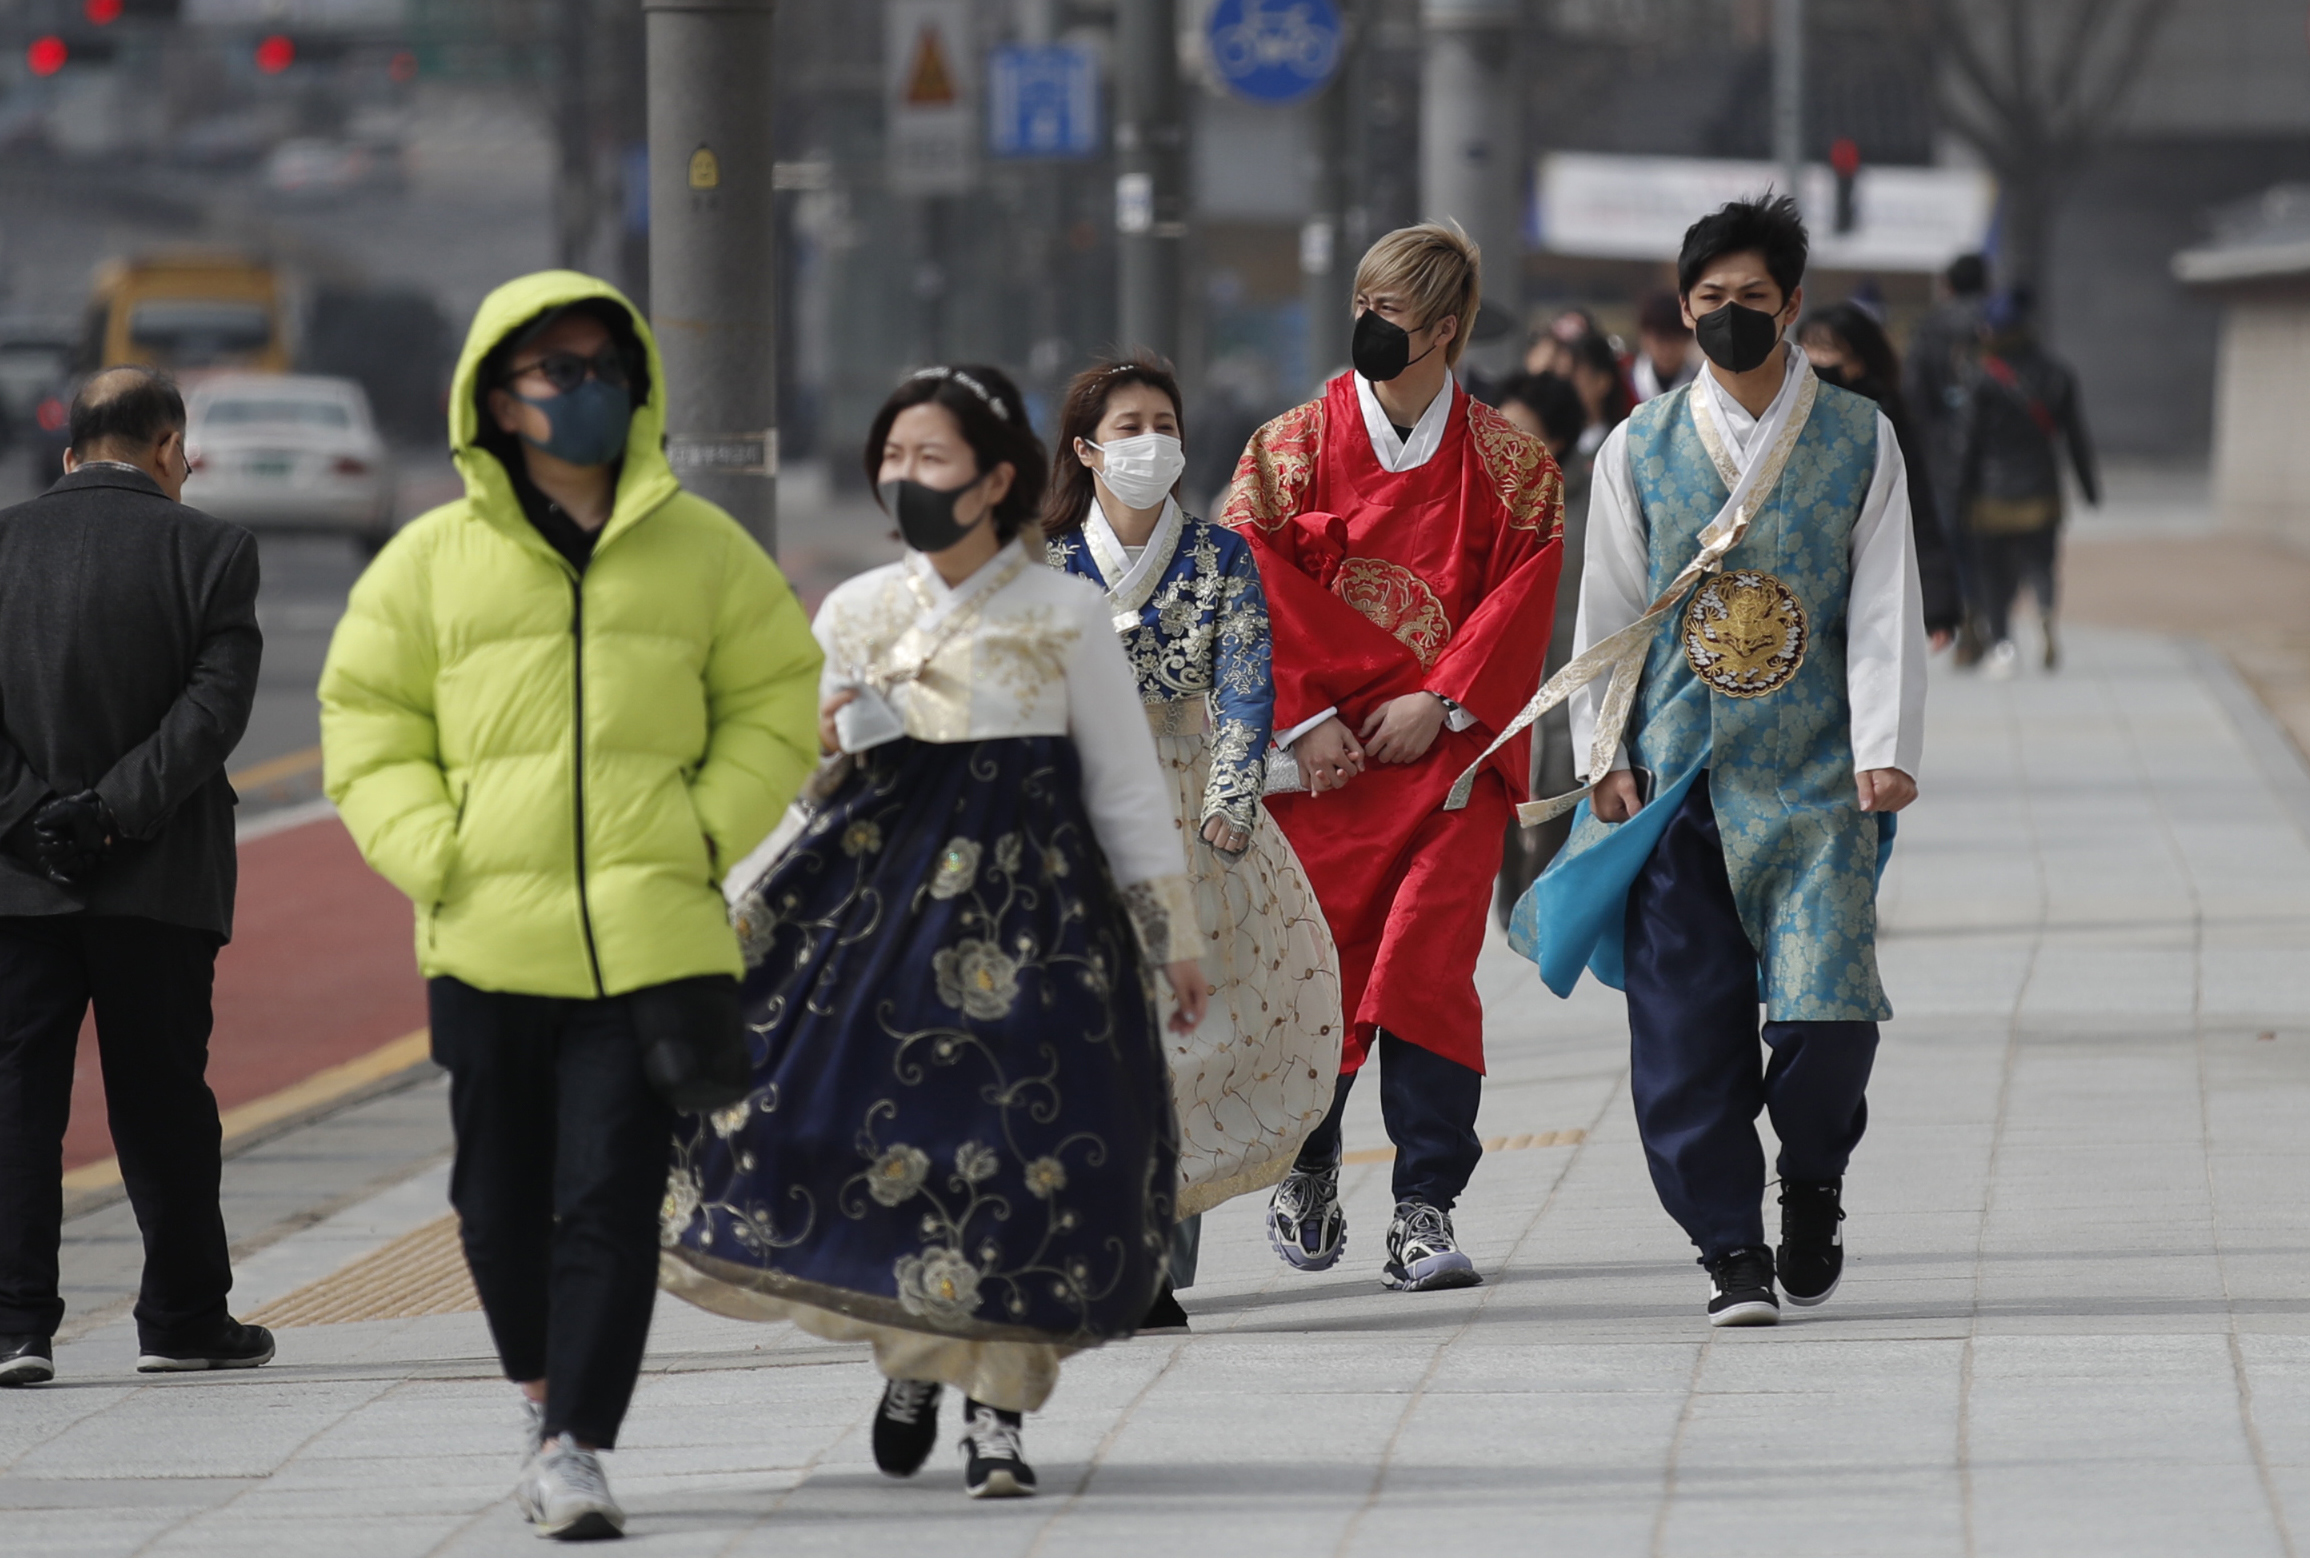 Virus Spreads in South Korean City as Thousands Are Screened | Time